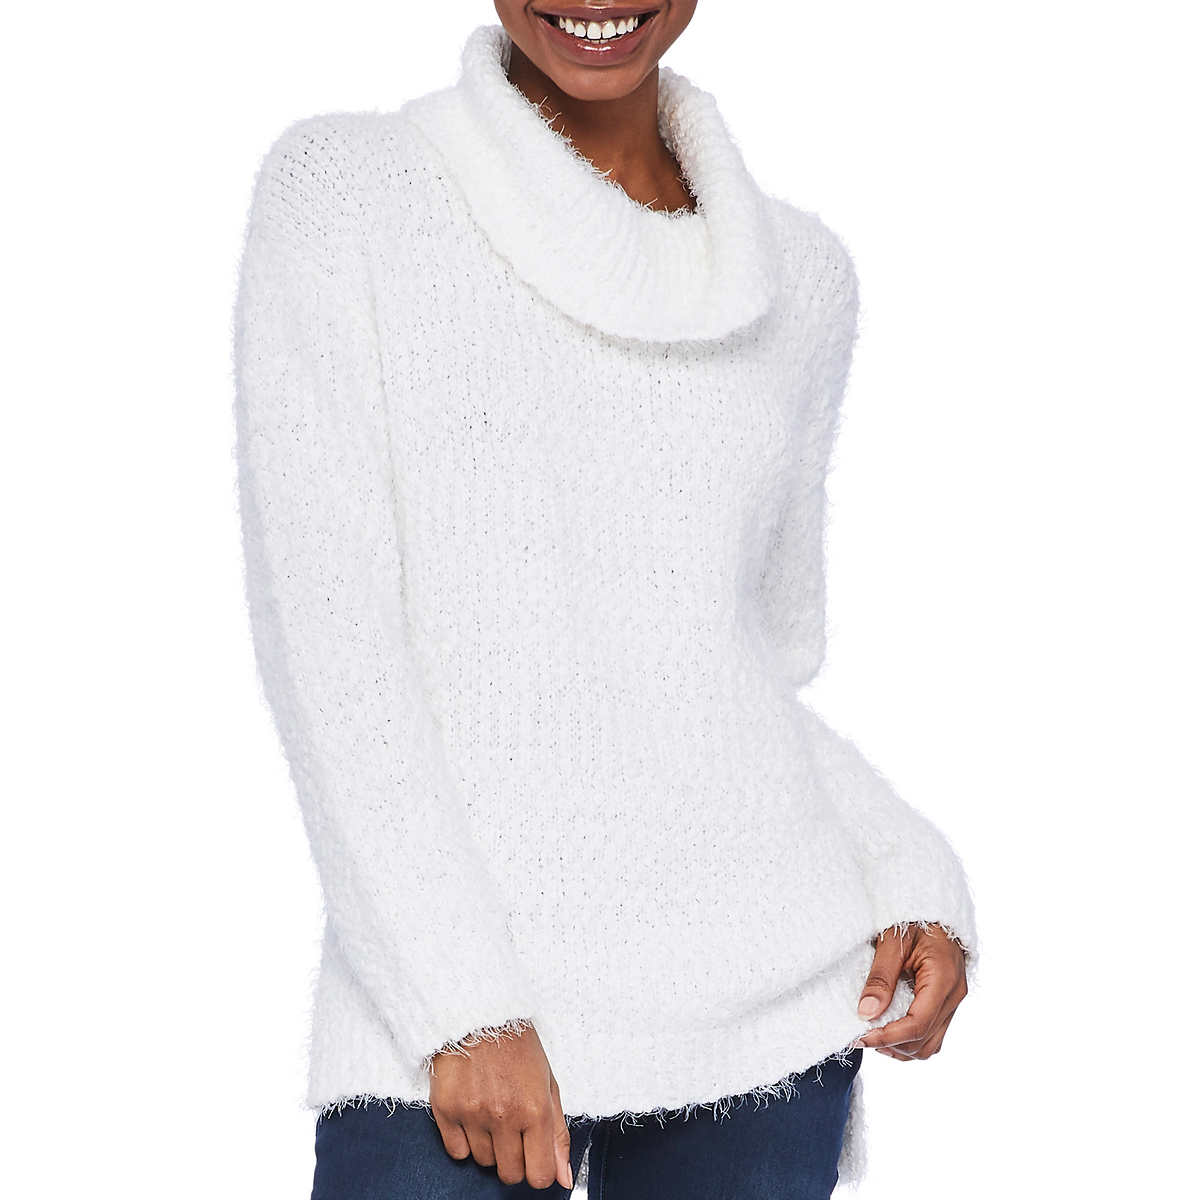 Kenneth Cole Women S Cowl Neck Tunic Sweater